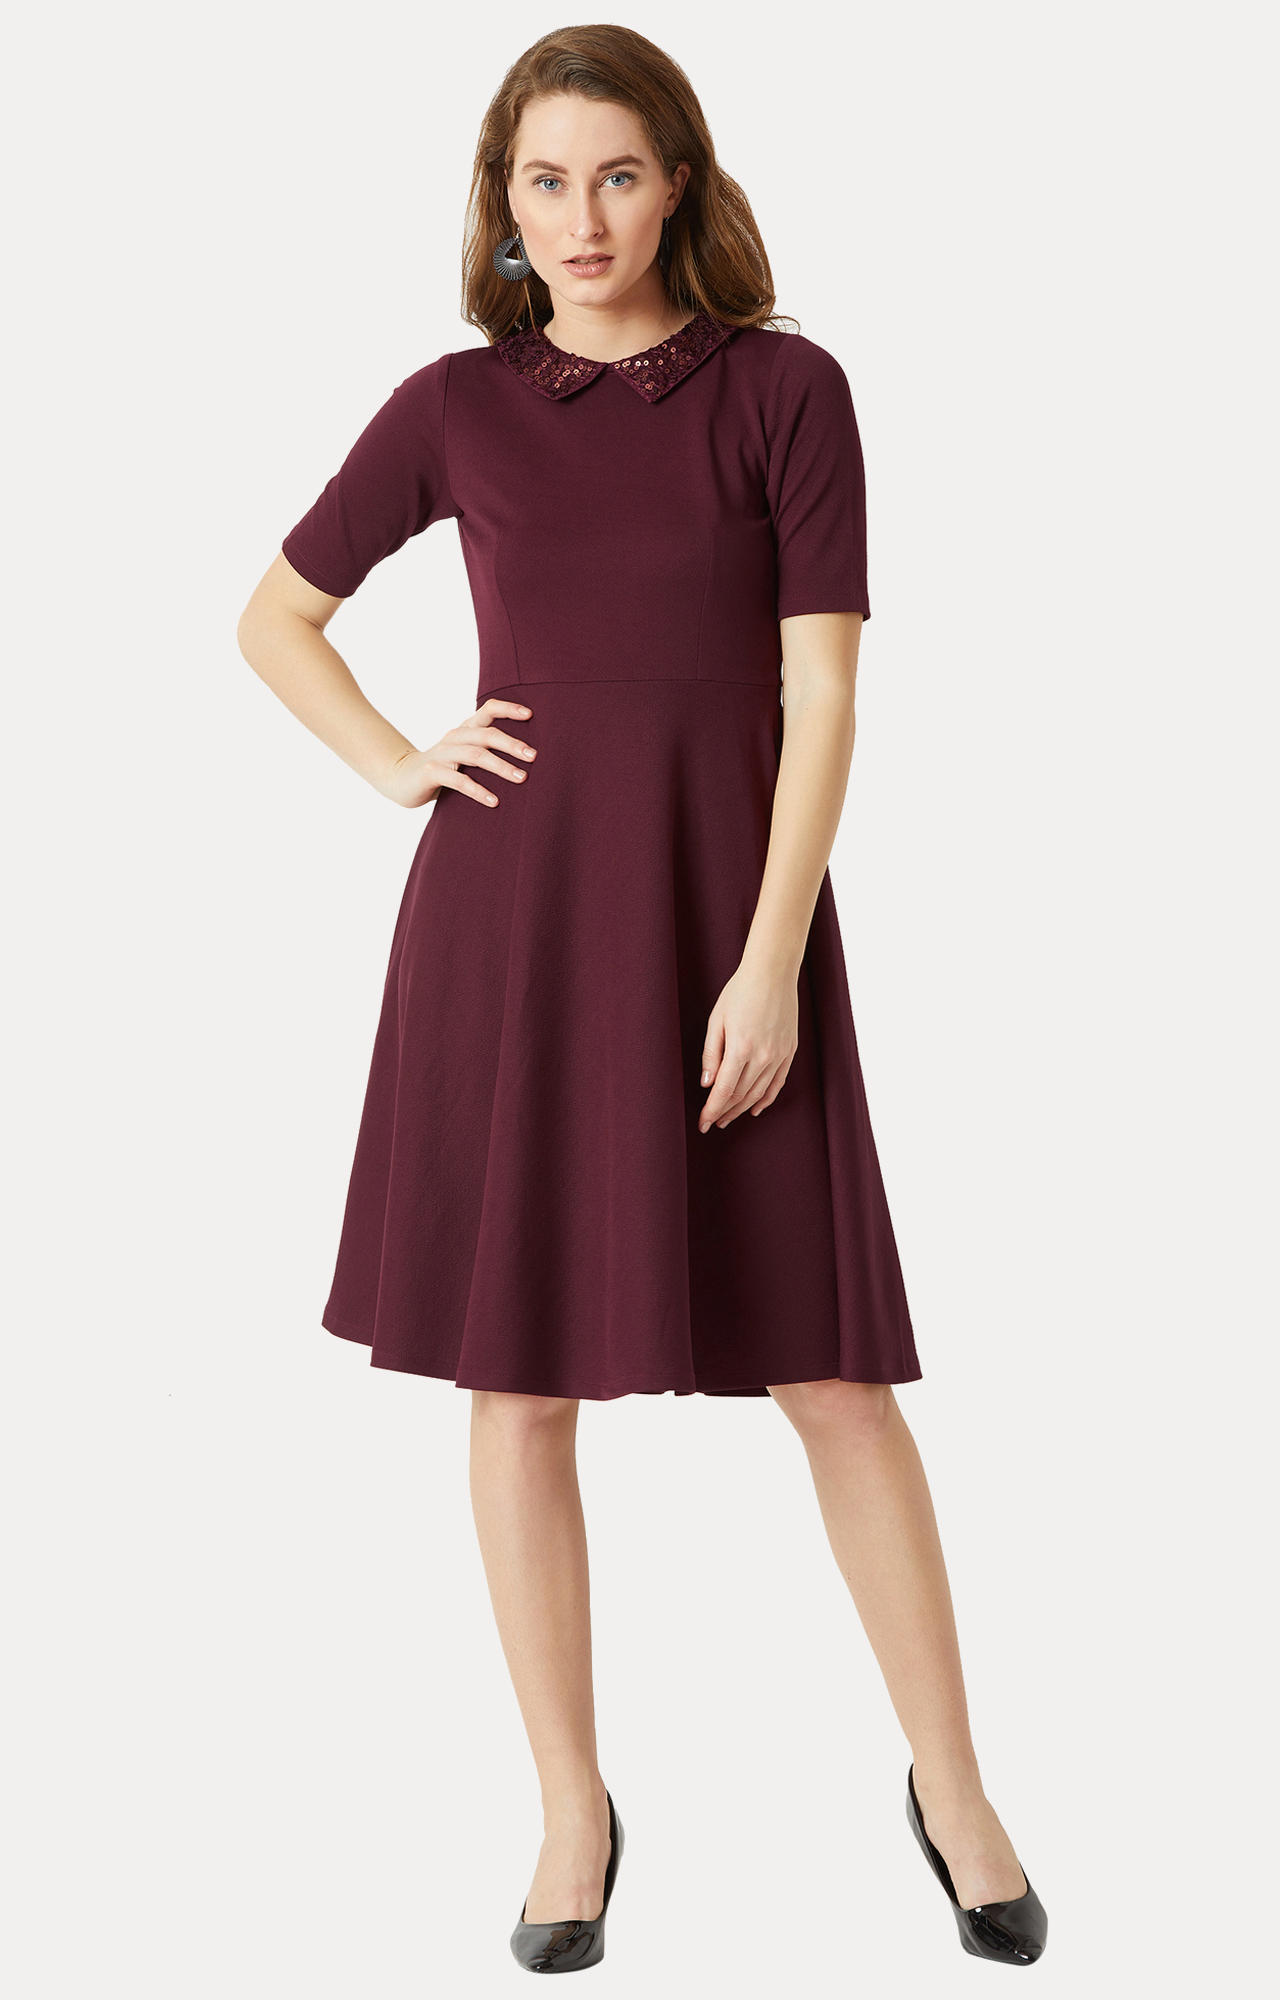 MISS CHASE | Wine Red Solid Skater Dress